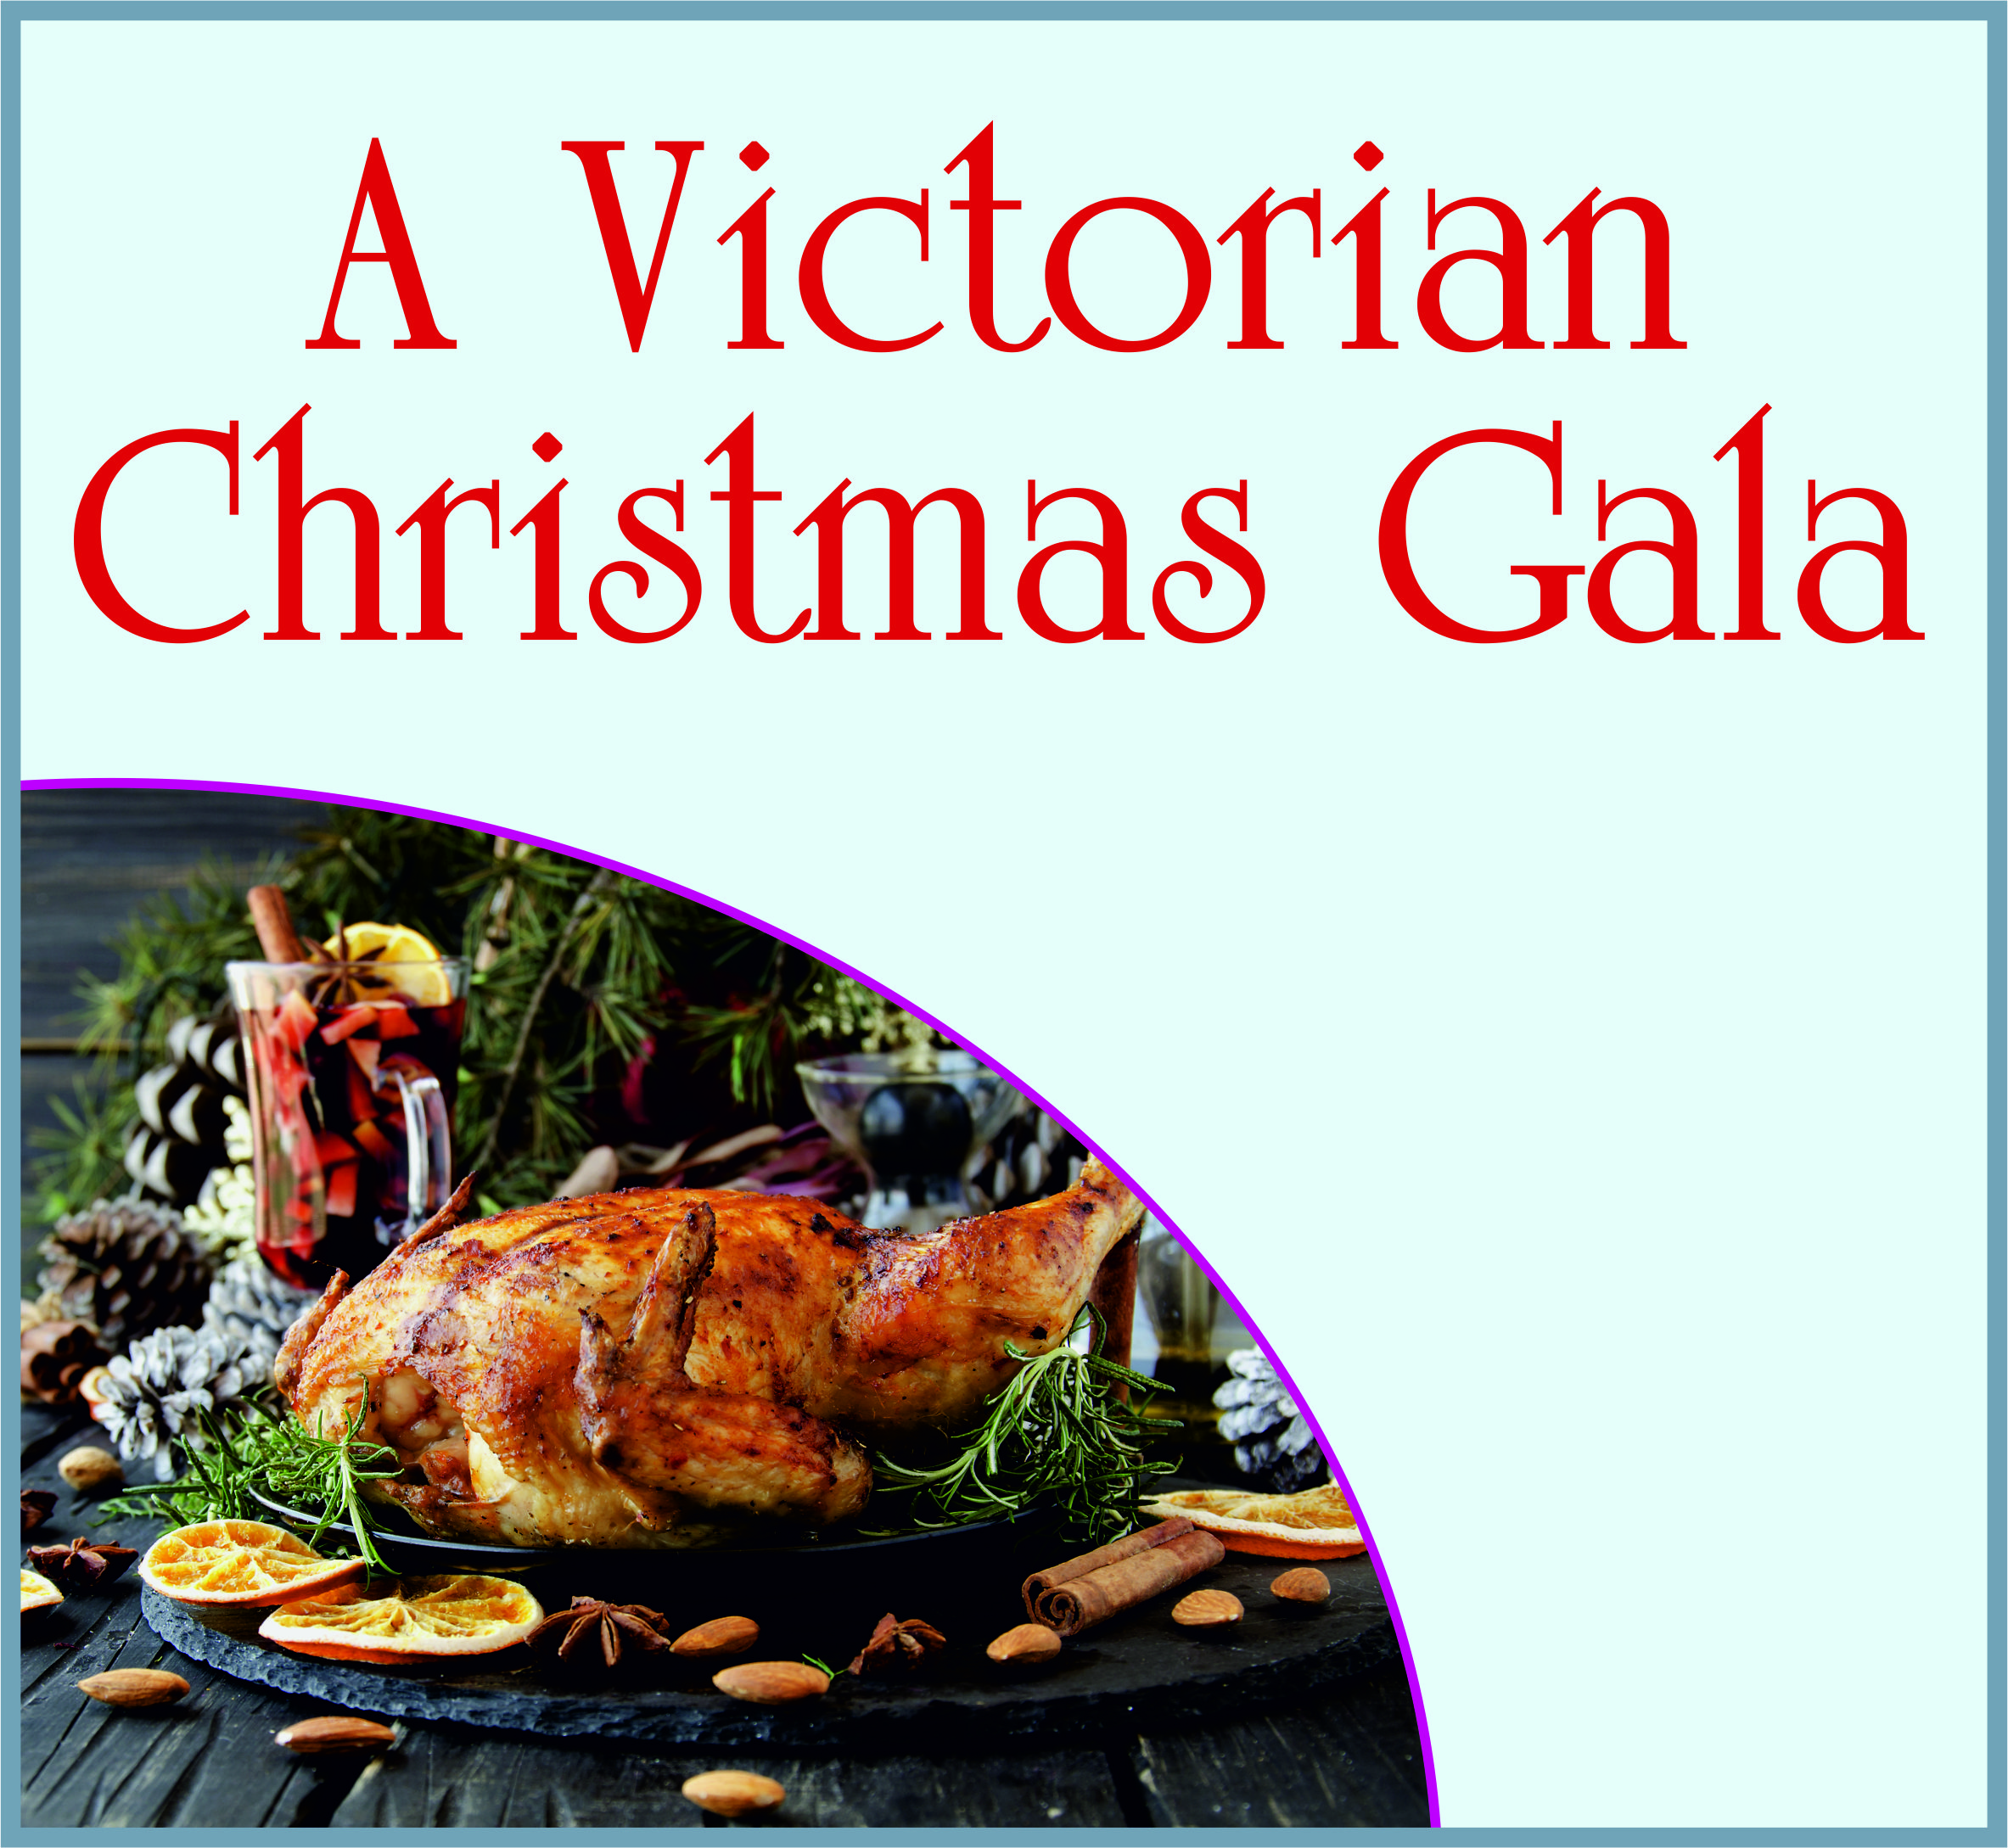 Events Template victorian gala AC